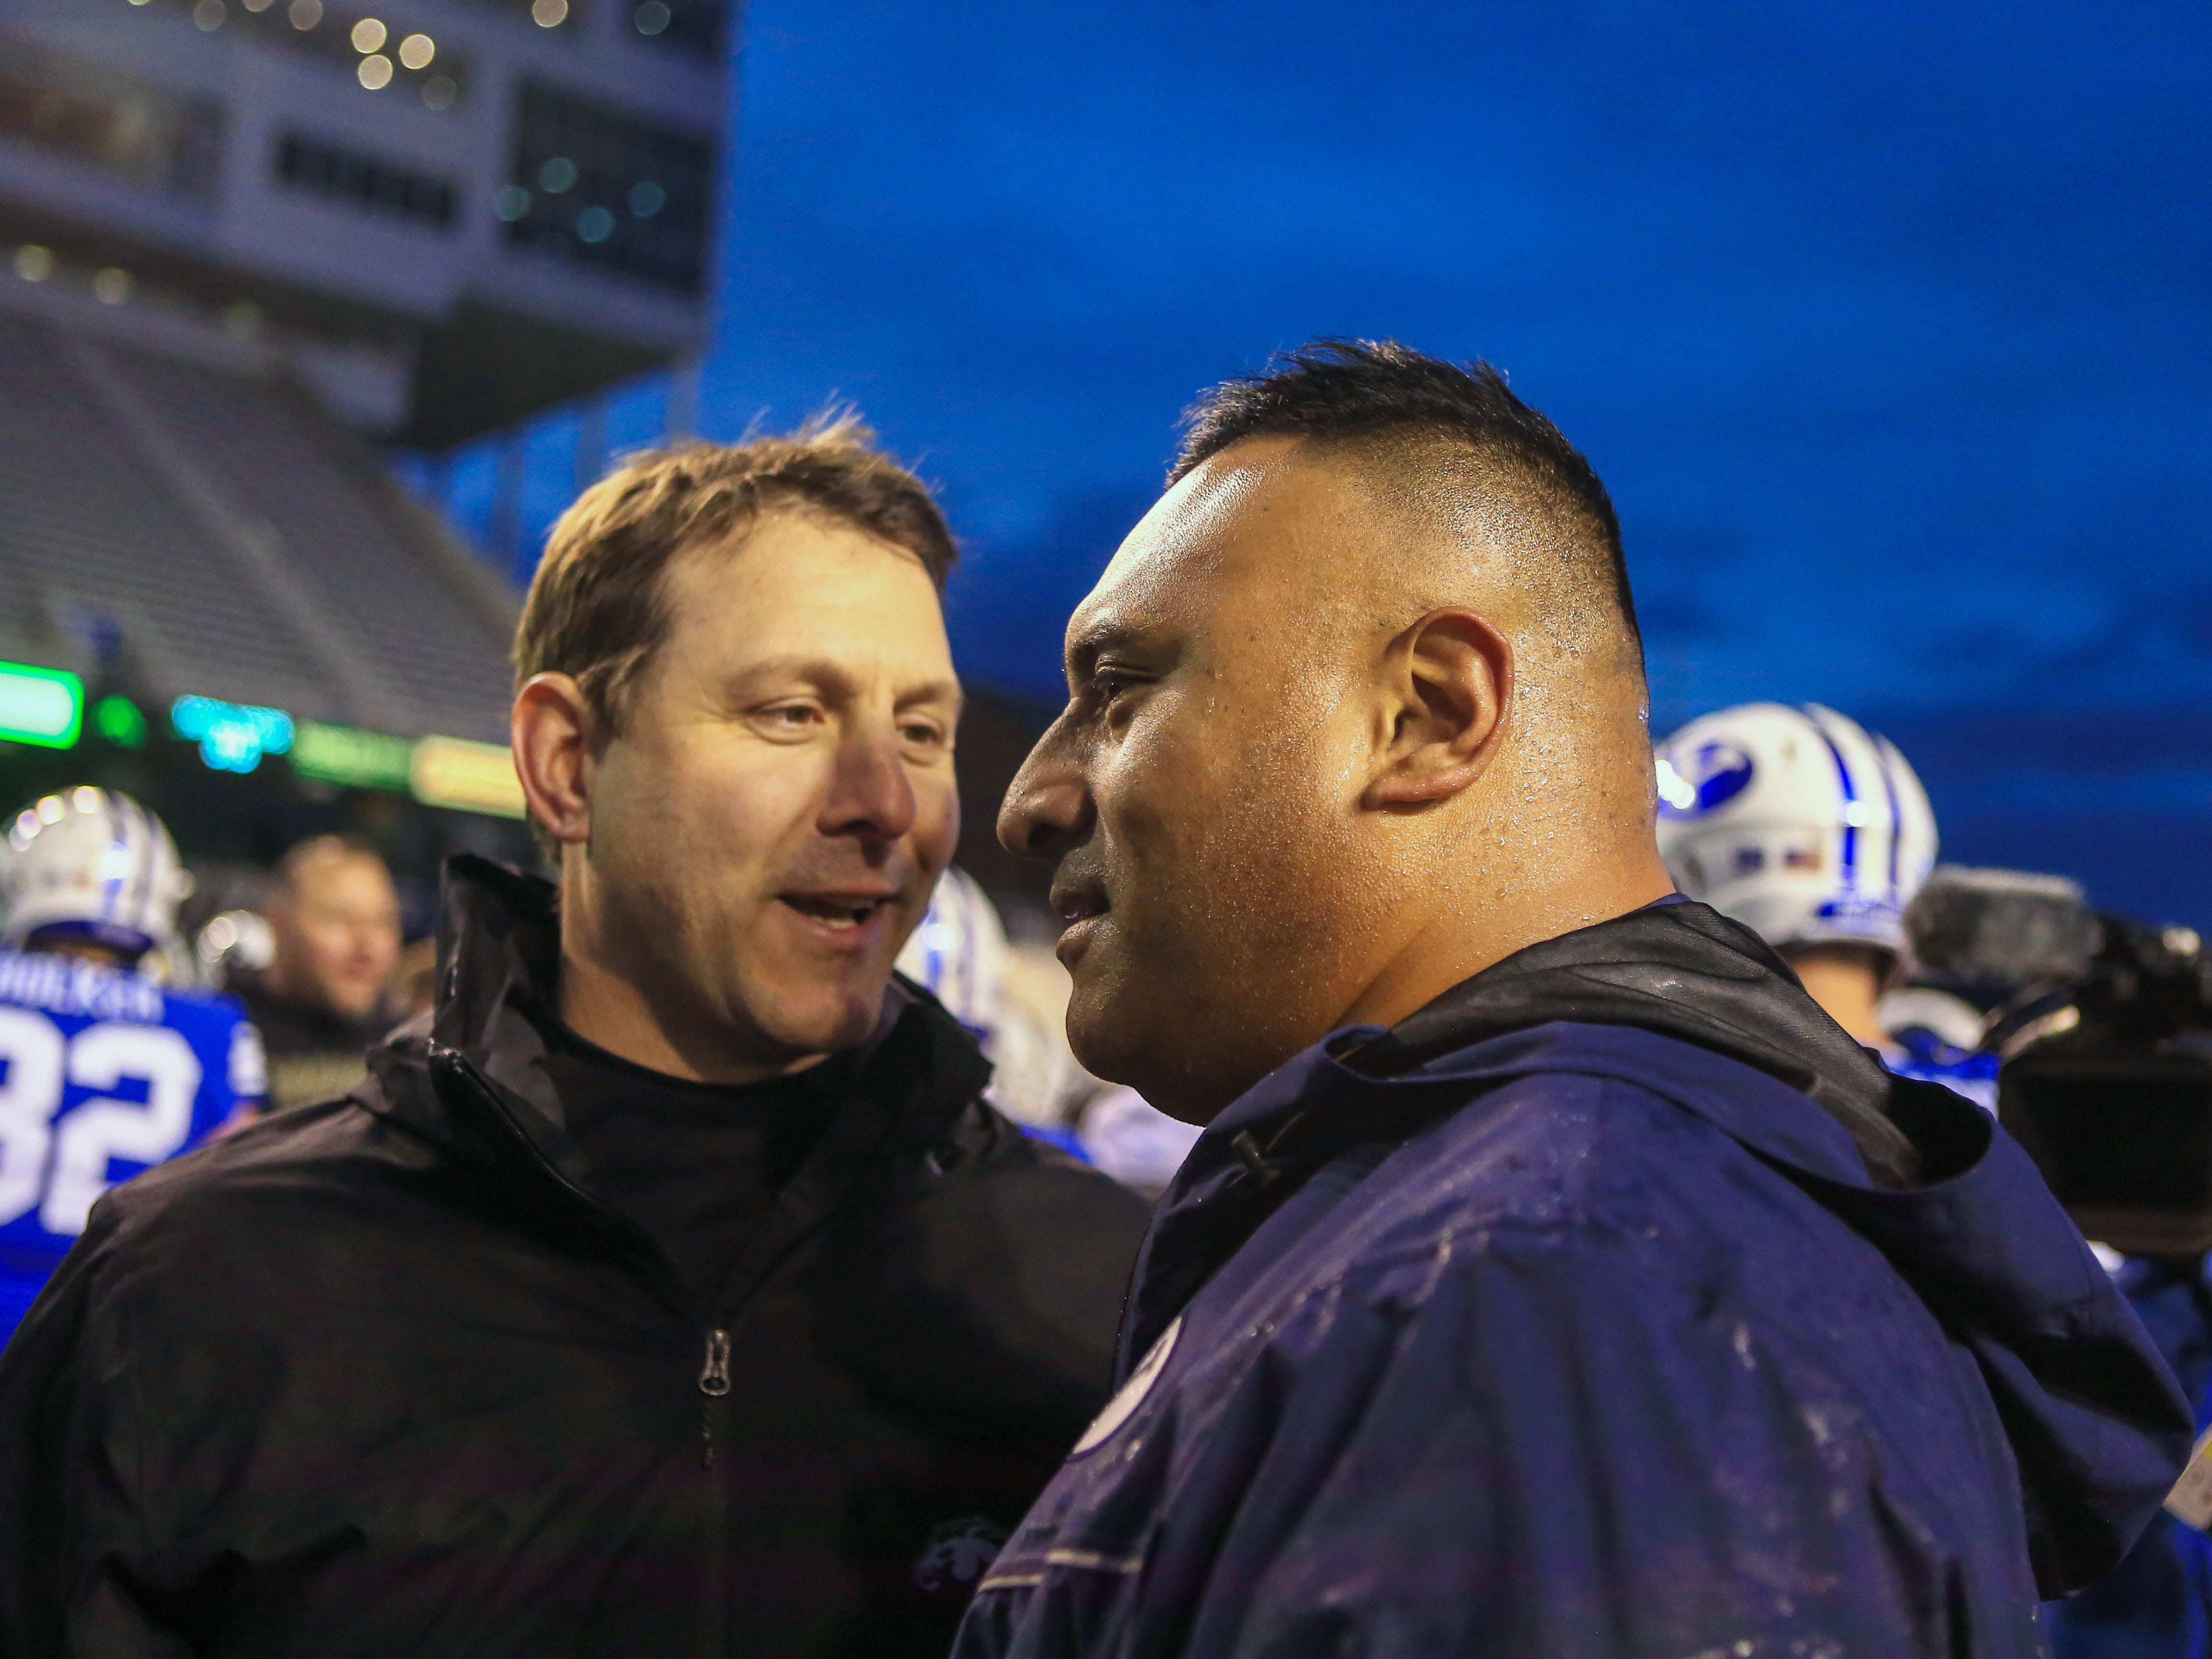 Dec 21, 2018; Boise, ID, United States; Brigham Young Cougars head coach Kalani Sitake (right) and Western Michigan Broncos head coach Tim Lester meet at midfield at the conclusion of the 2018 Potato Bowl at Albertsons Stadium. Brigham Young defeated Western Michigan 49-18.